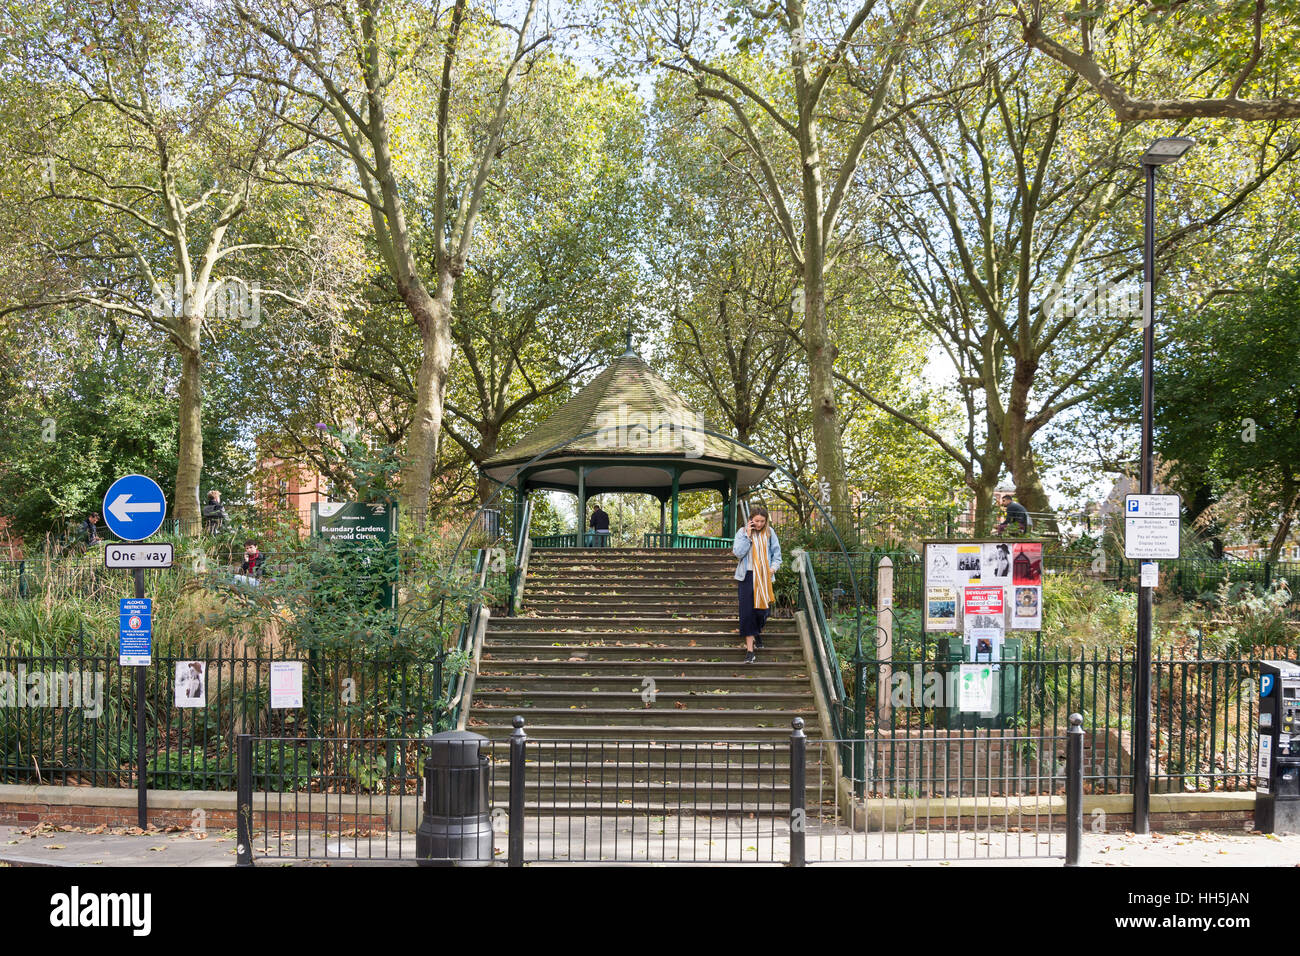 Jardins limitrophes, Arnold Circus, Shoreditch, London Borough of Hackney, Greater London, Angleterre, Royaume-Uni Photo Stock